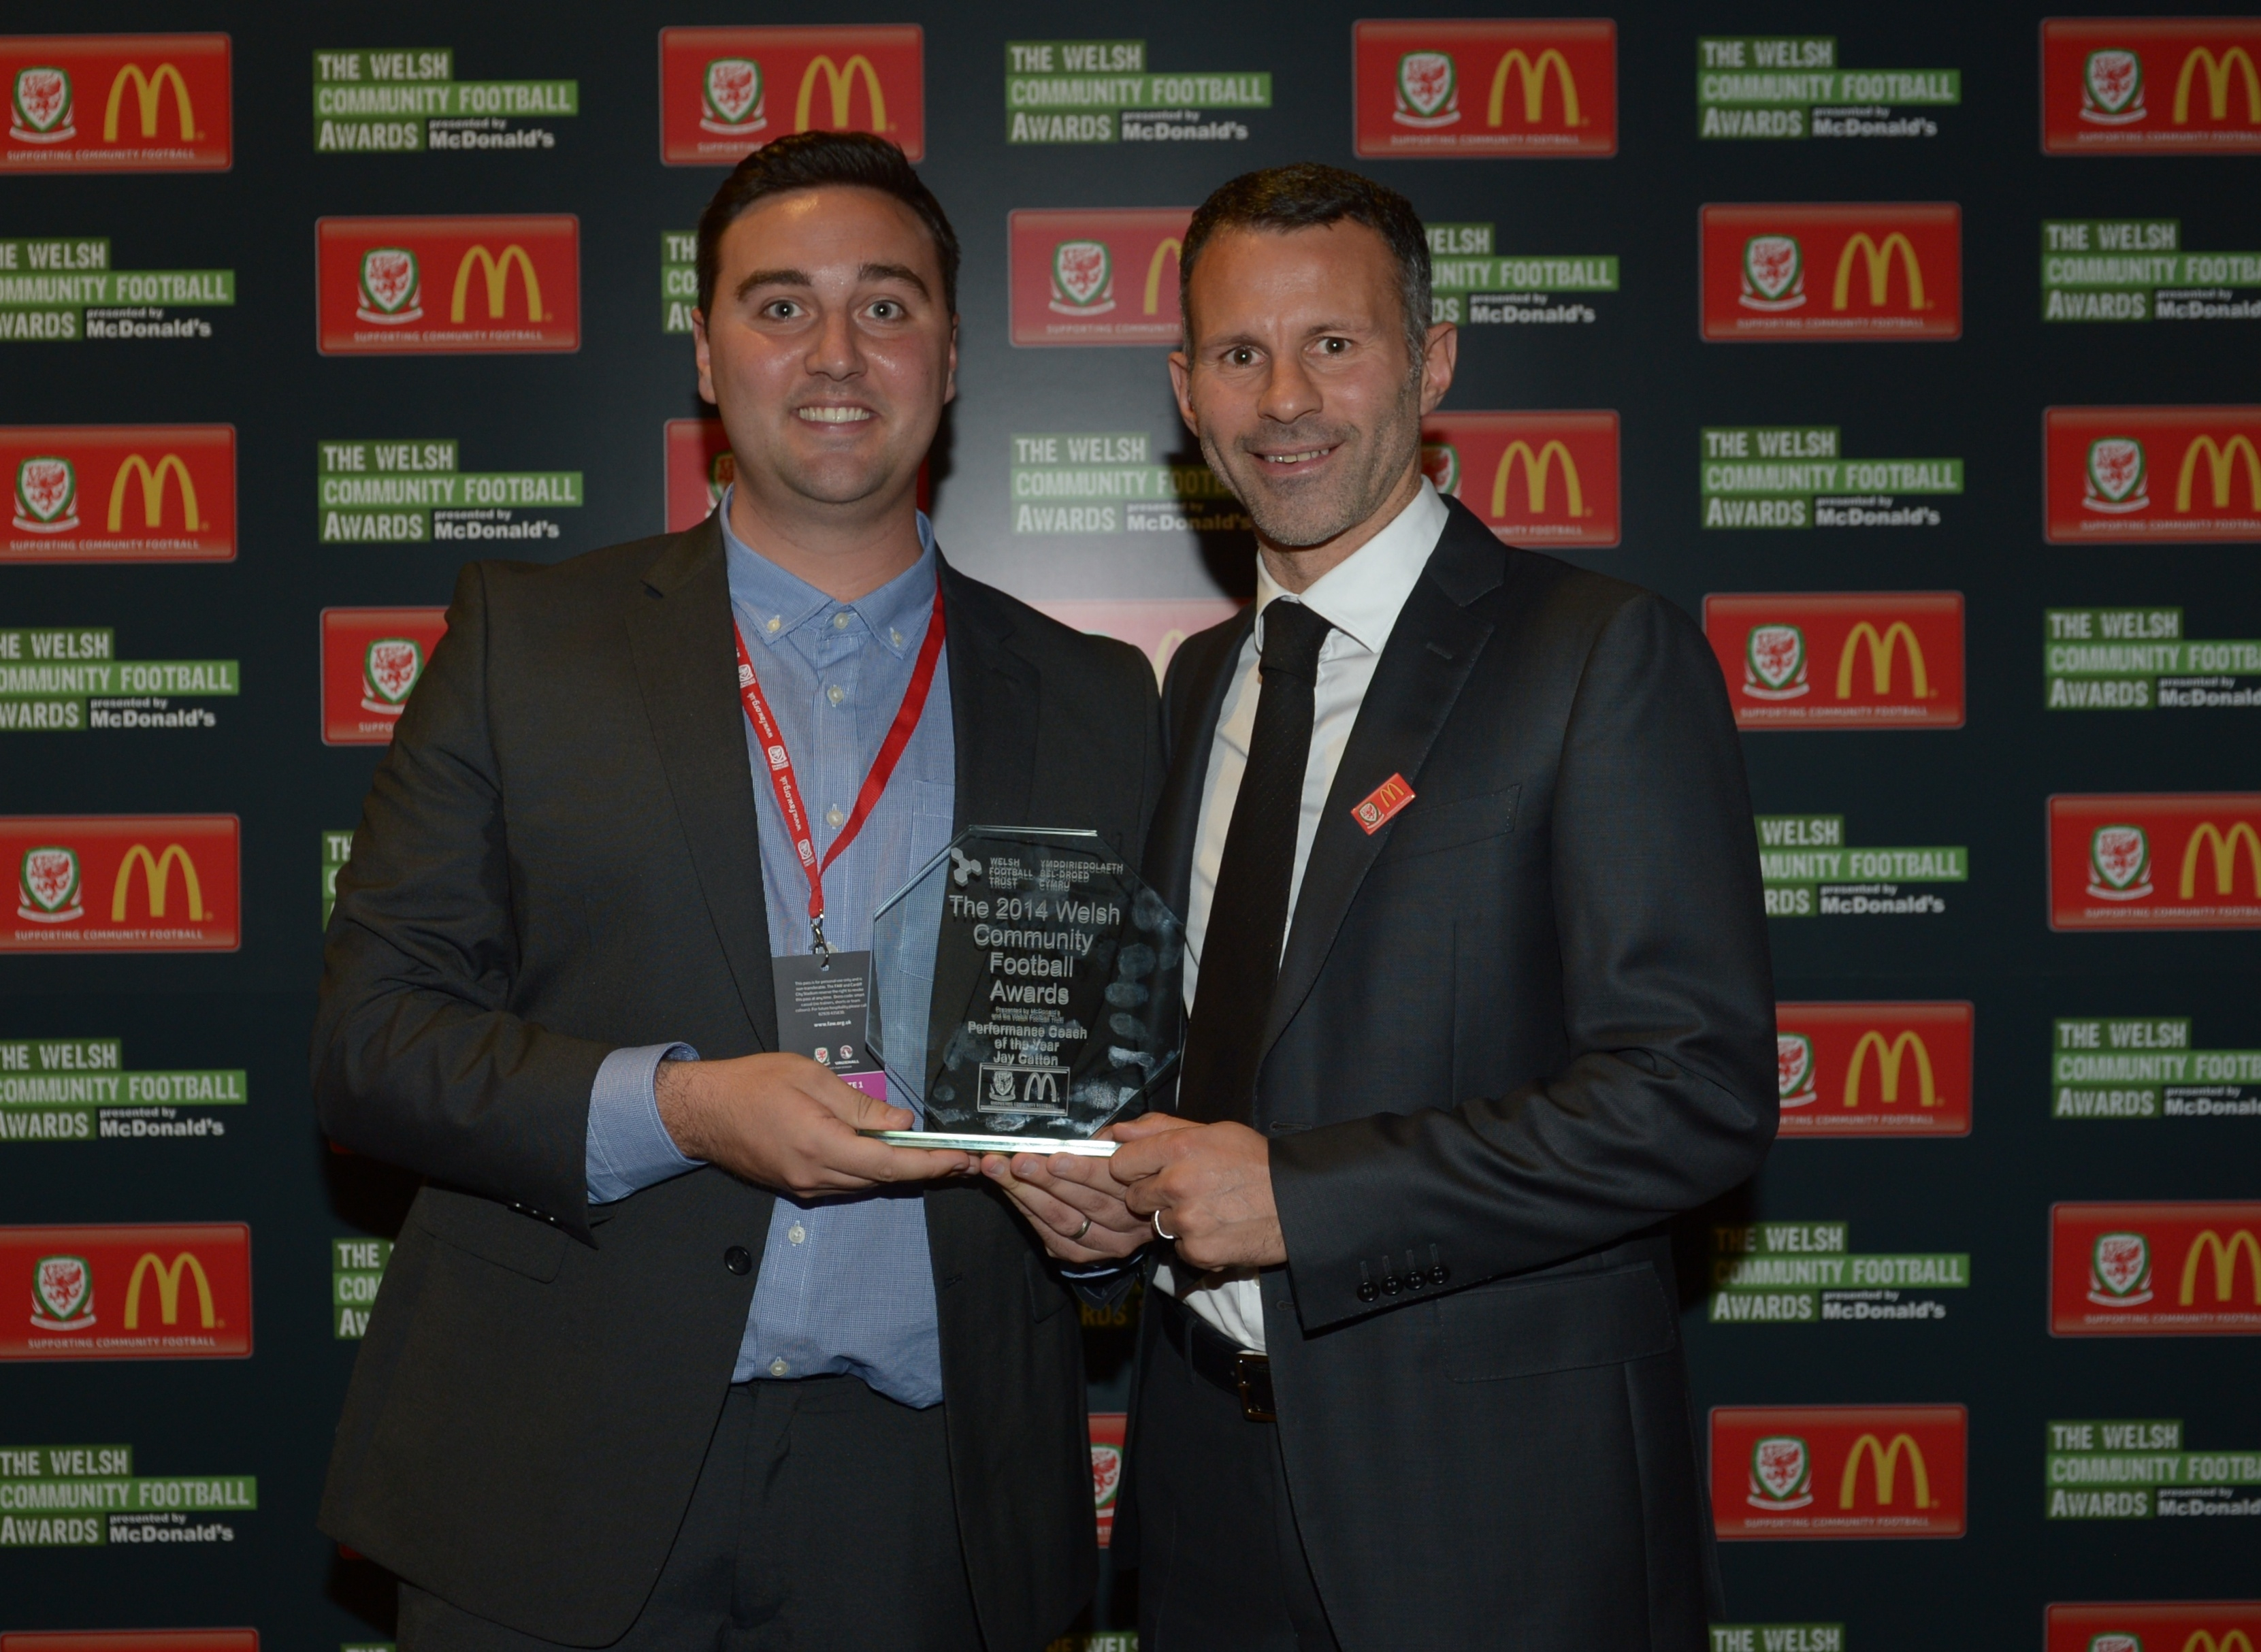 CONNAH'S QUAY FOOTBALL HERO COLLECTS NATIONAL FOOTBALL AWARD